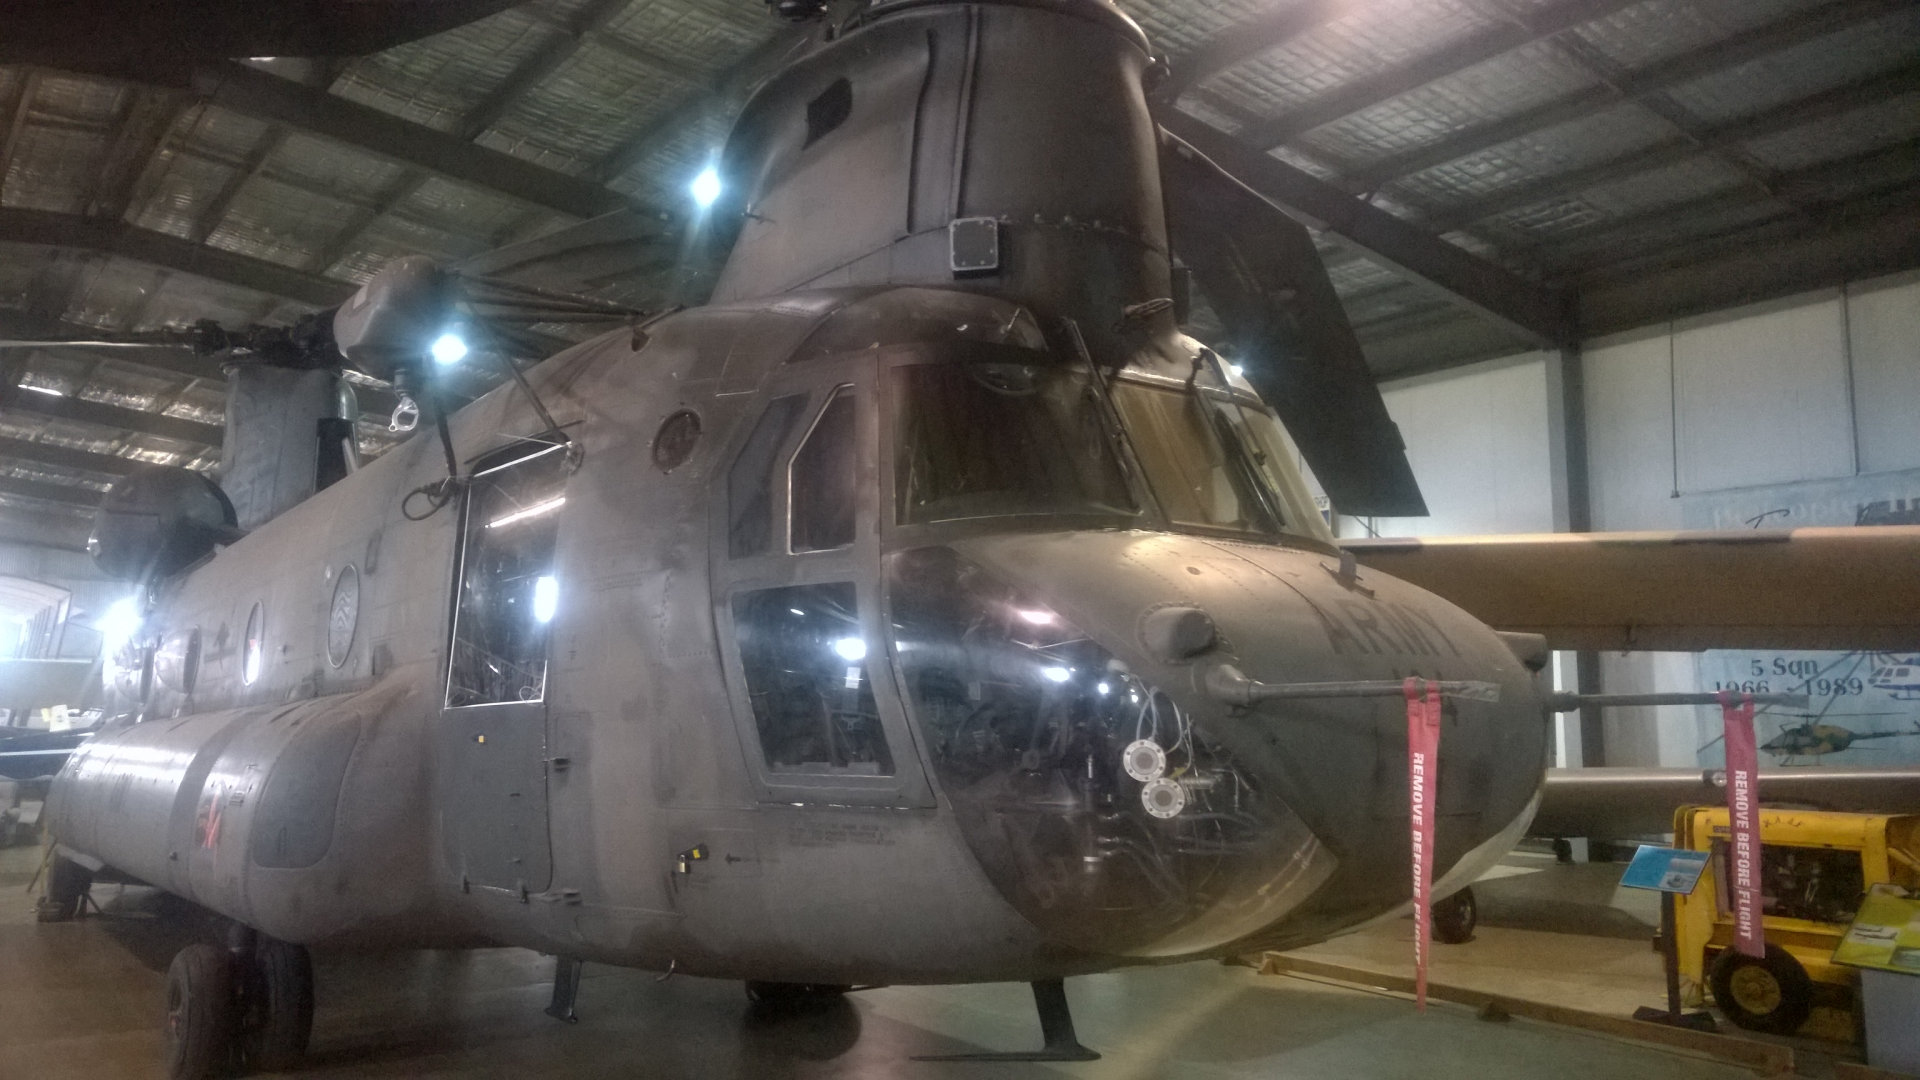 Boeing CH-47D Chinook helicopter located in the Australian Army Flying Museum near Oakey, displays include a variety of aircraft and army artefacts and memorabilia